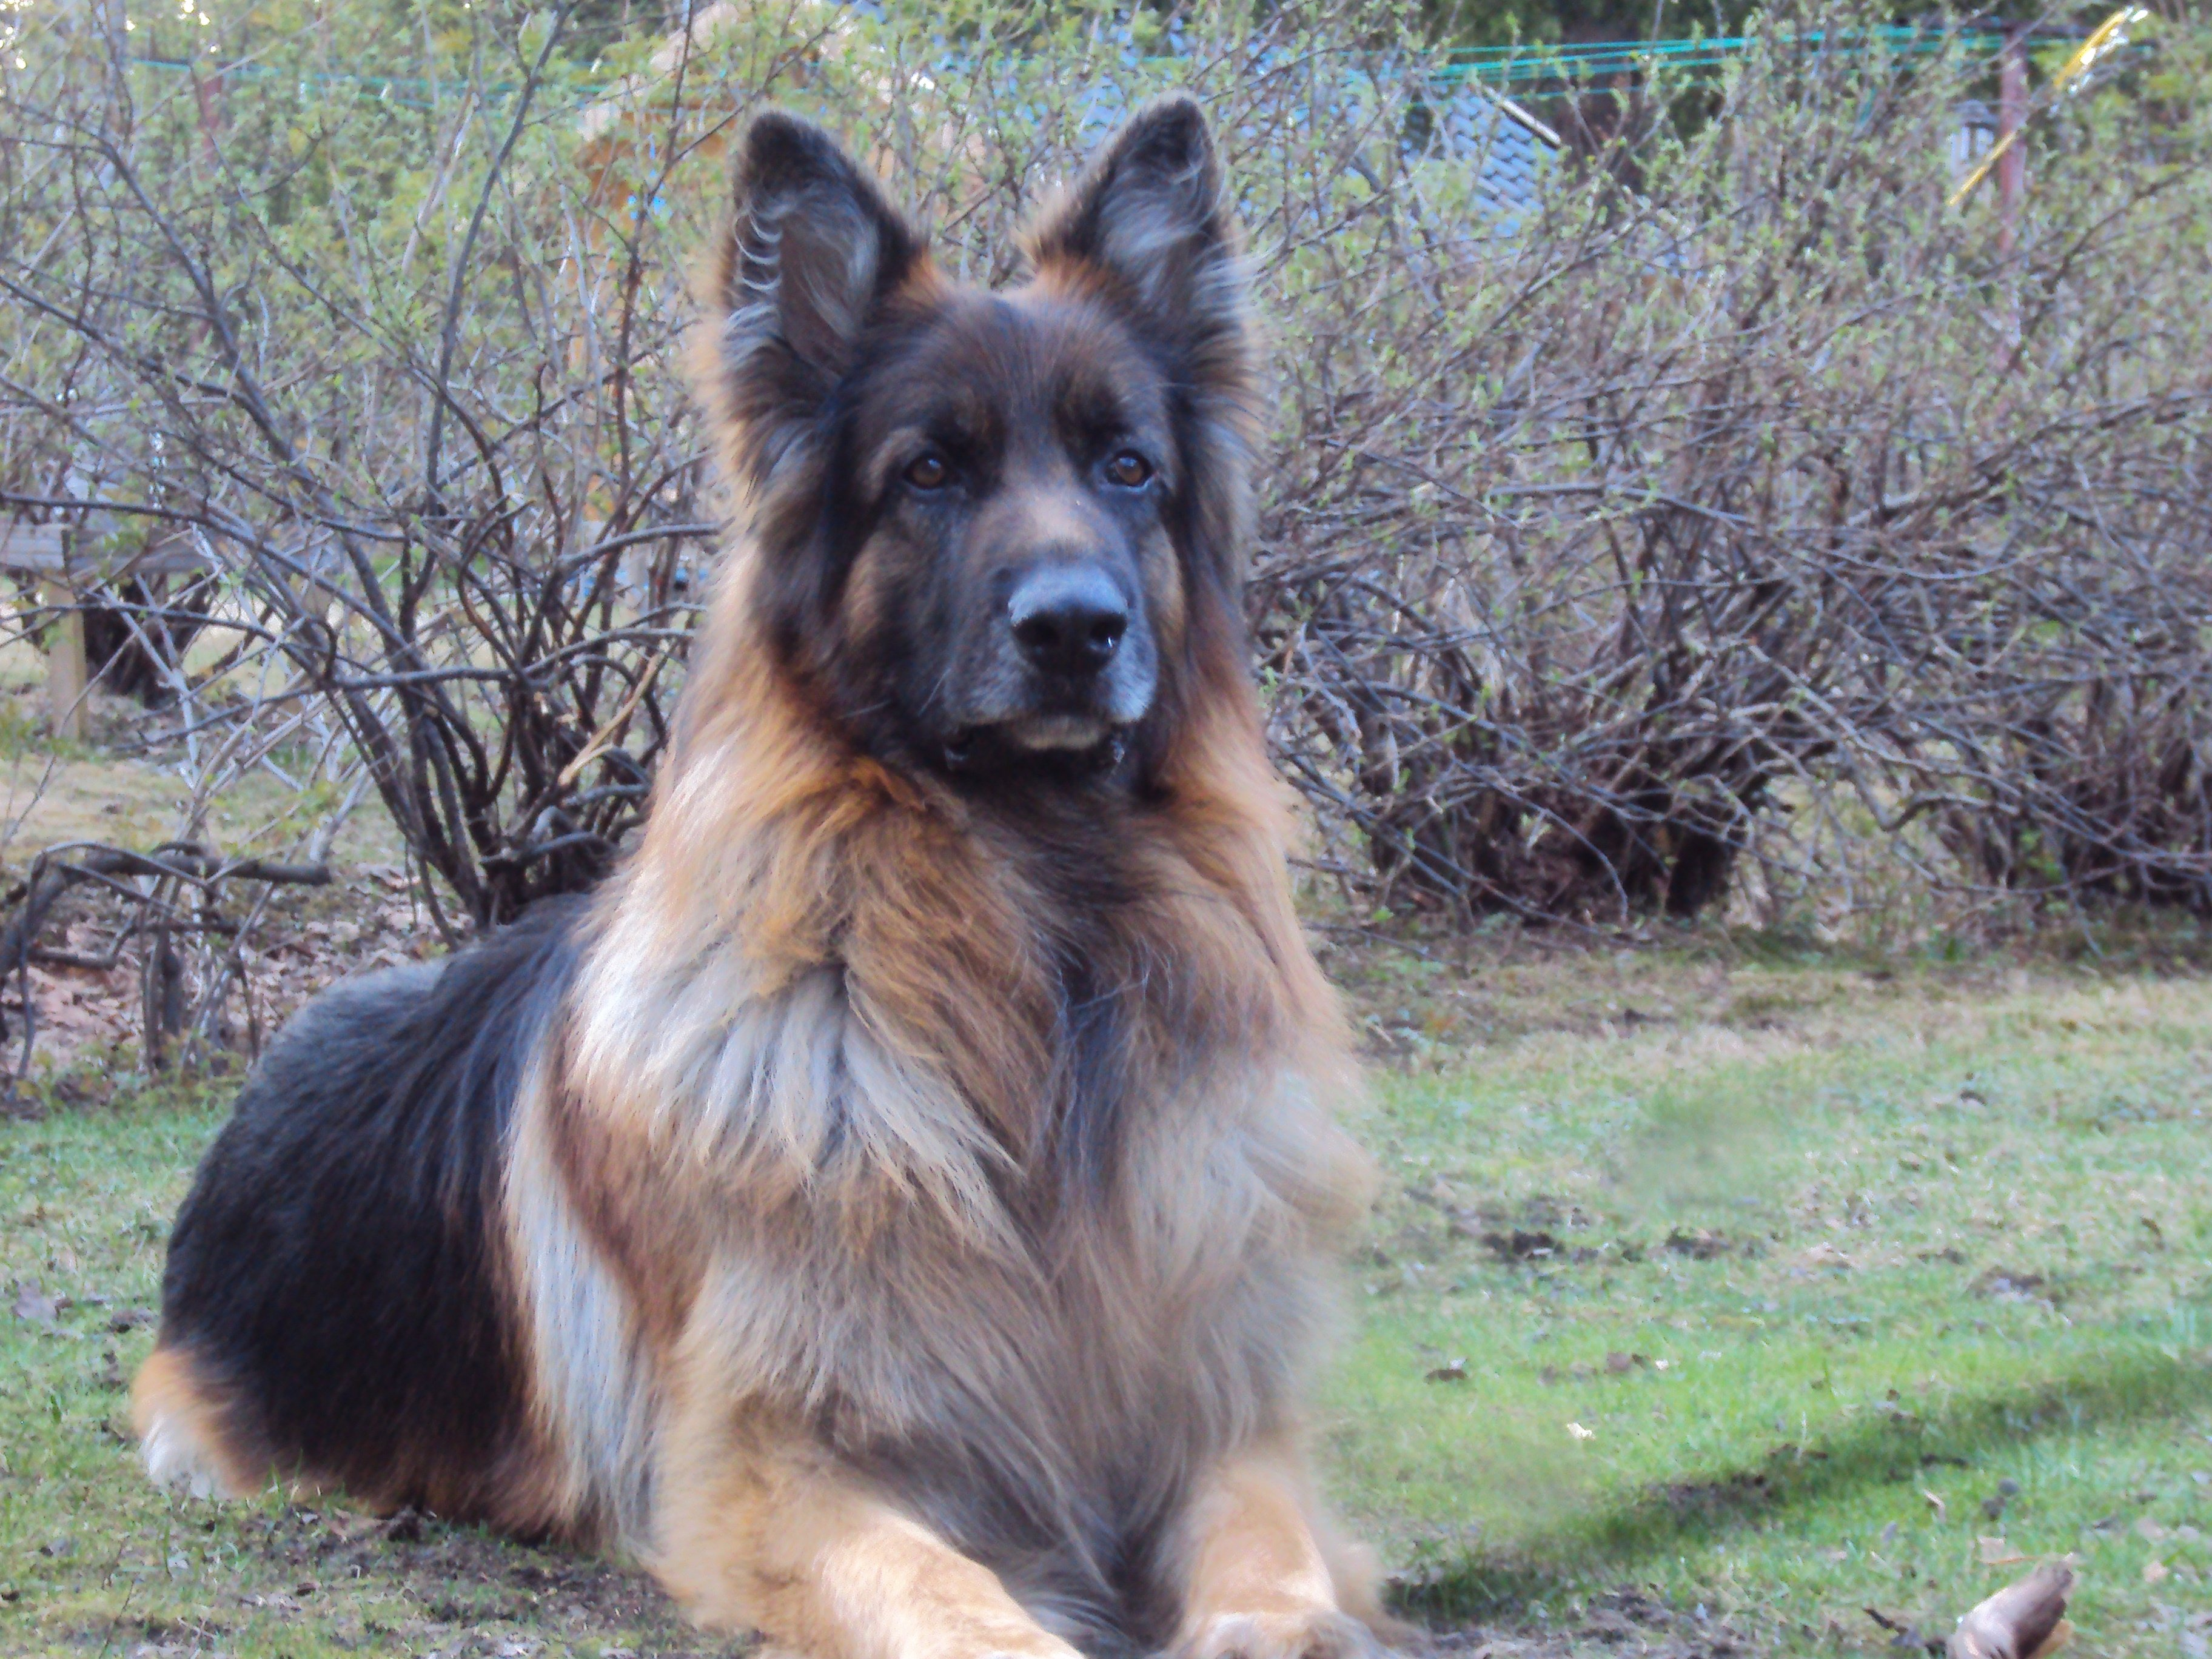 183 Top German Shepherd Dog Names Of 2020 By Popularity